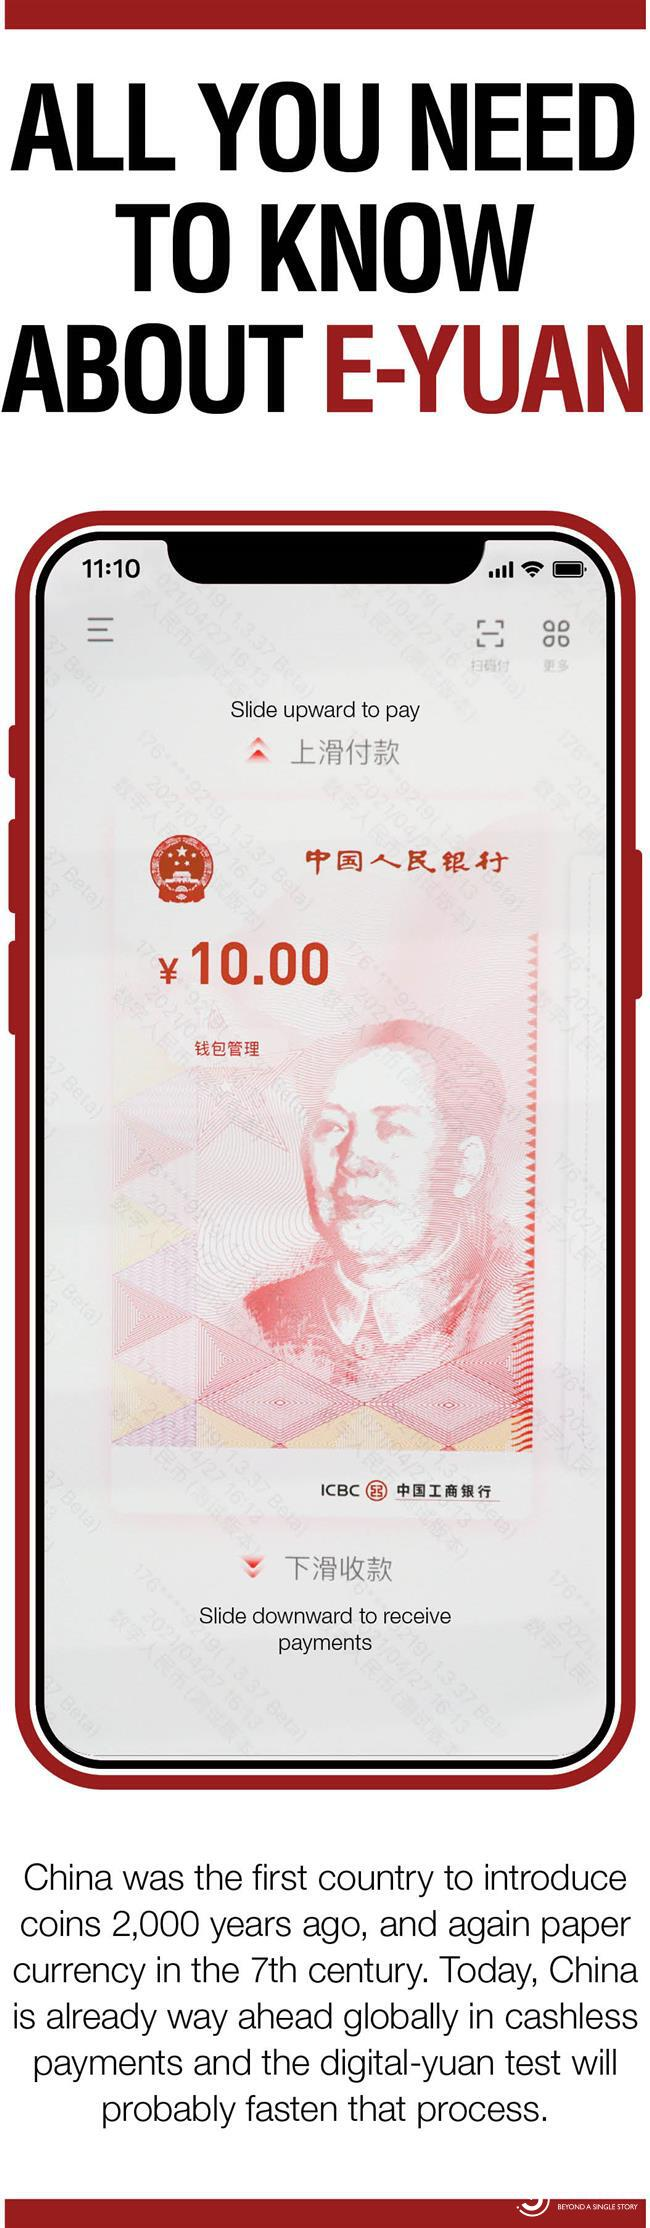 Explainer: all you need to know about e-yuan